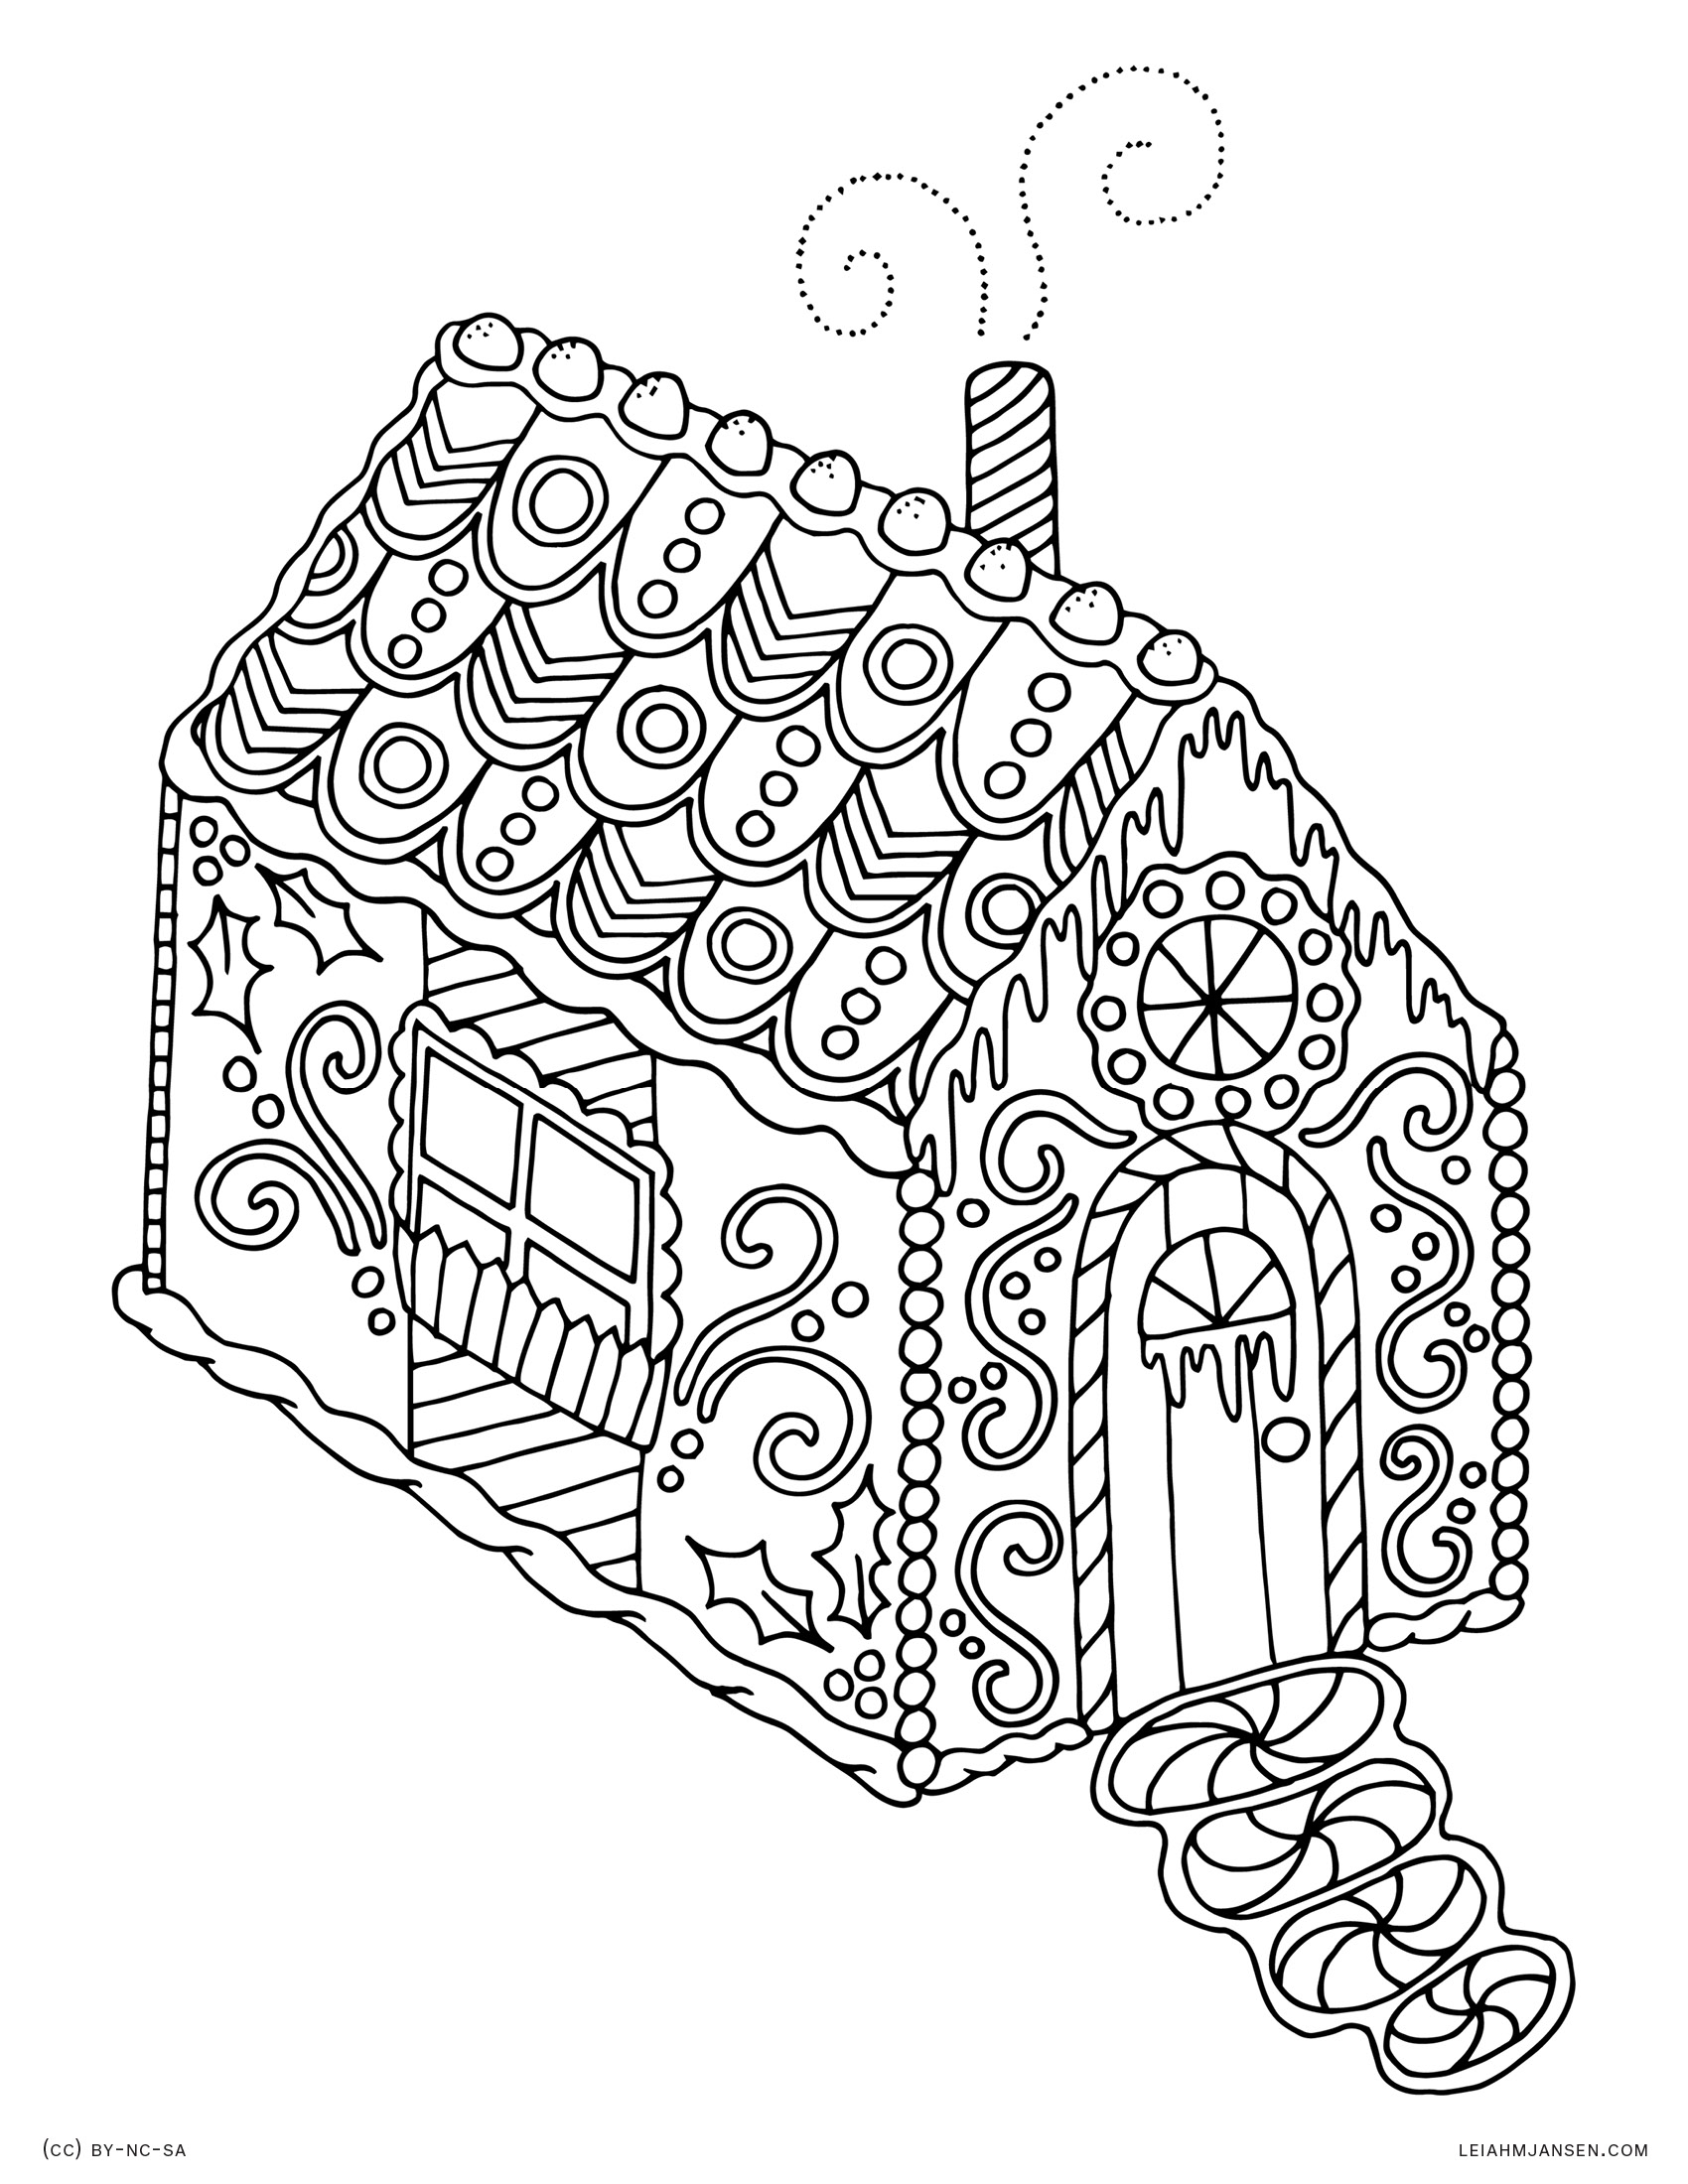 Coloring Picture : Ideasistmas Sheets For Middle School Free ...